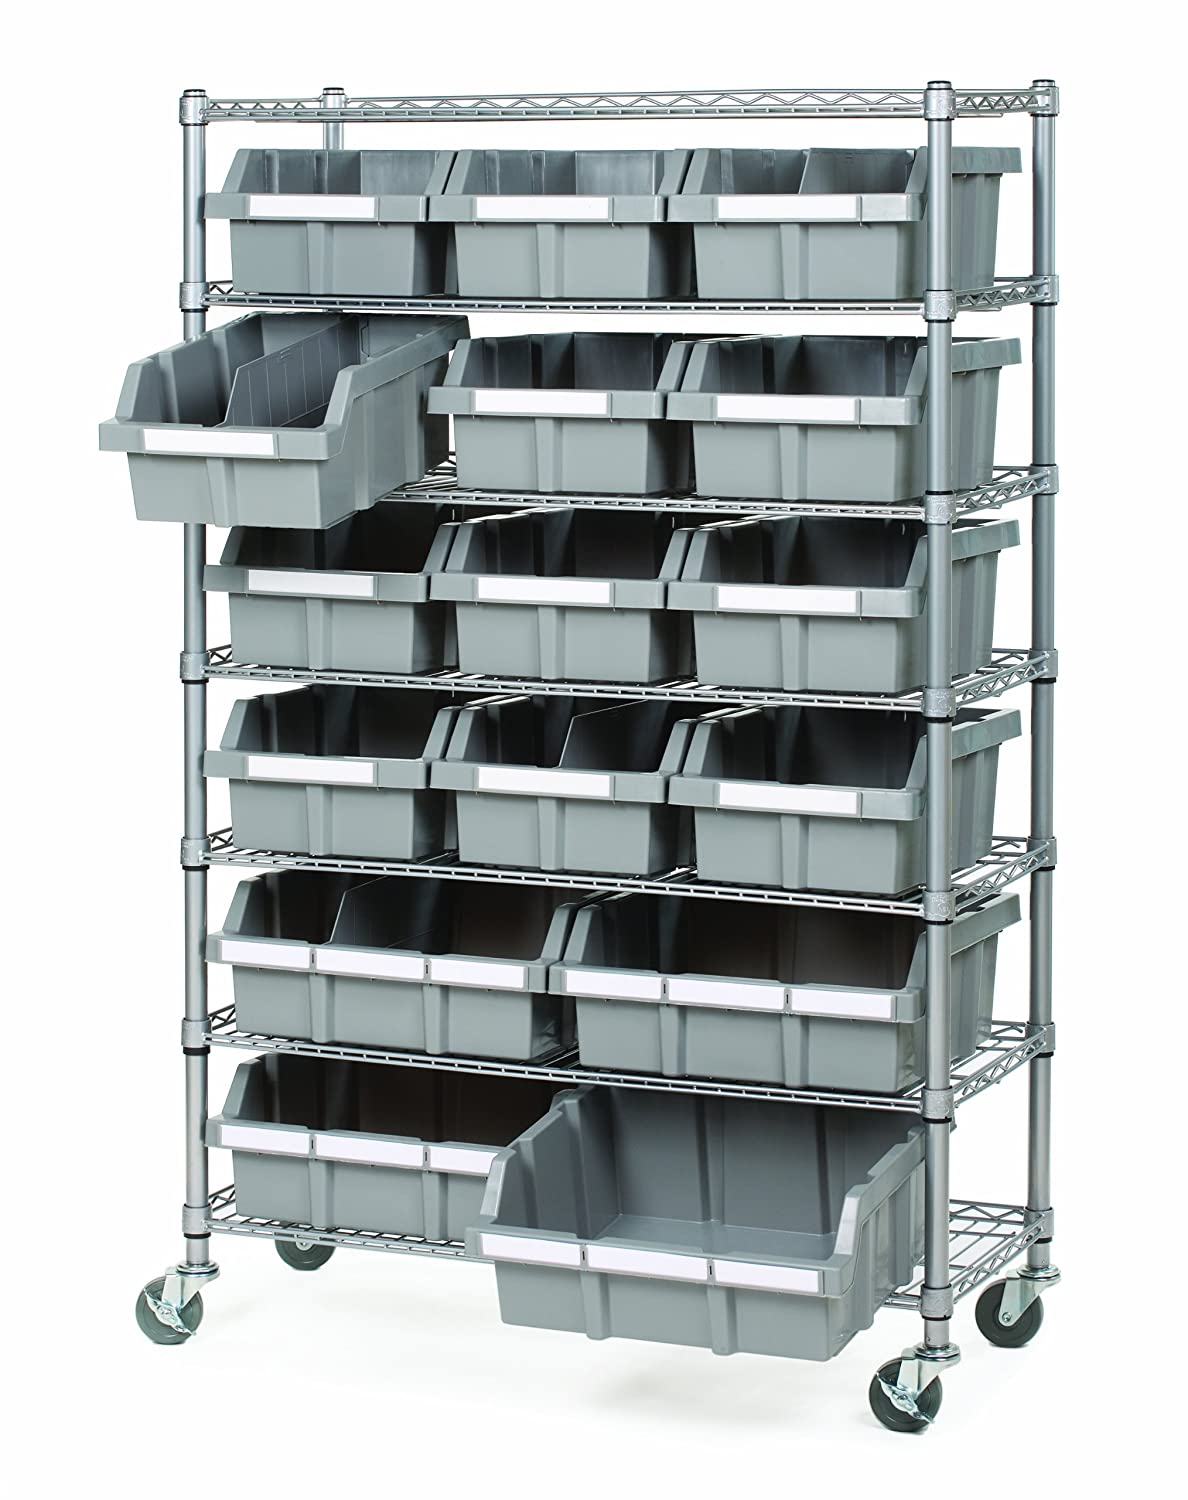 111656303777 in addition 182519769671 additionally Bug Kit in addition Shopping Carts likewise Plastic Filing Strips. on plastic rolling cart